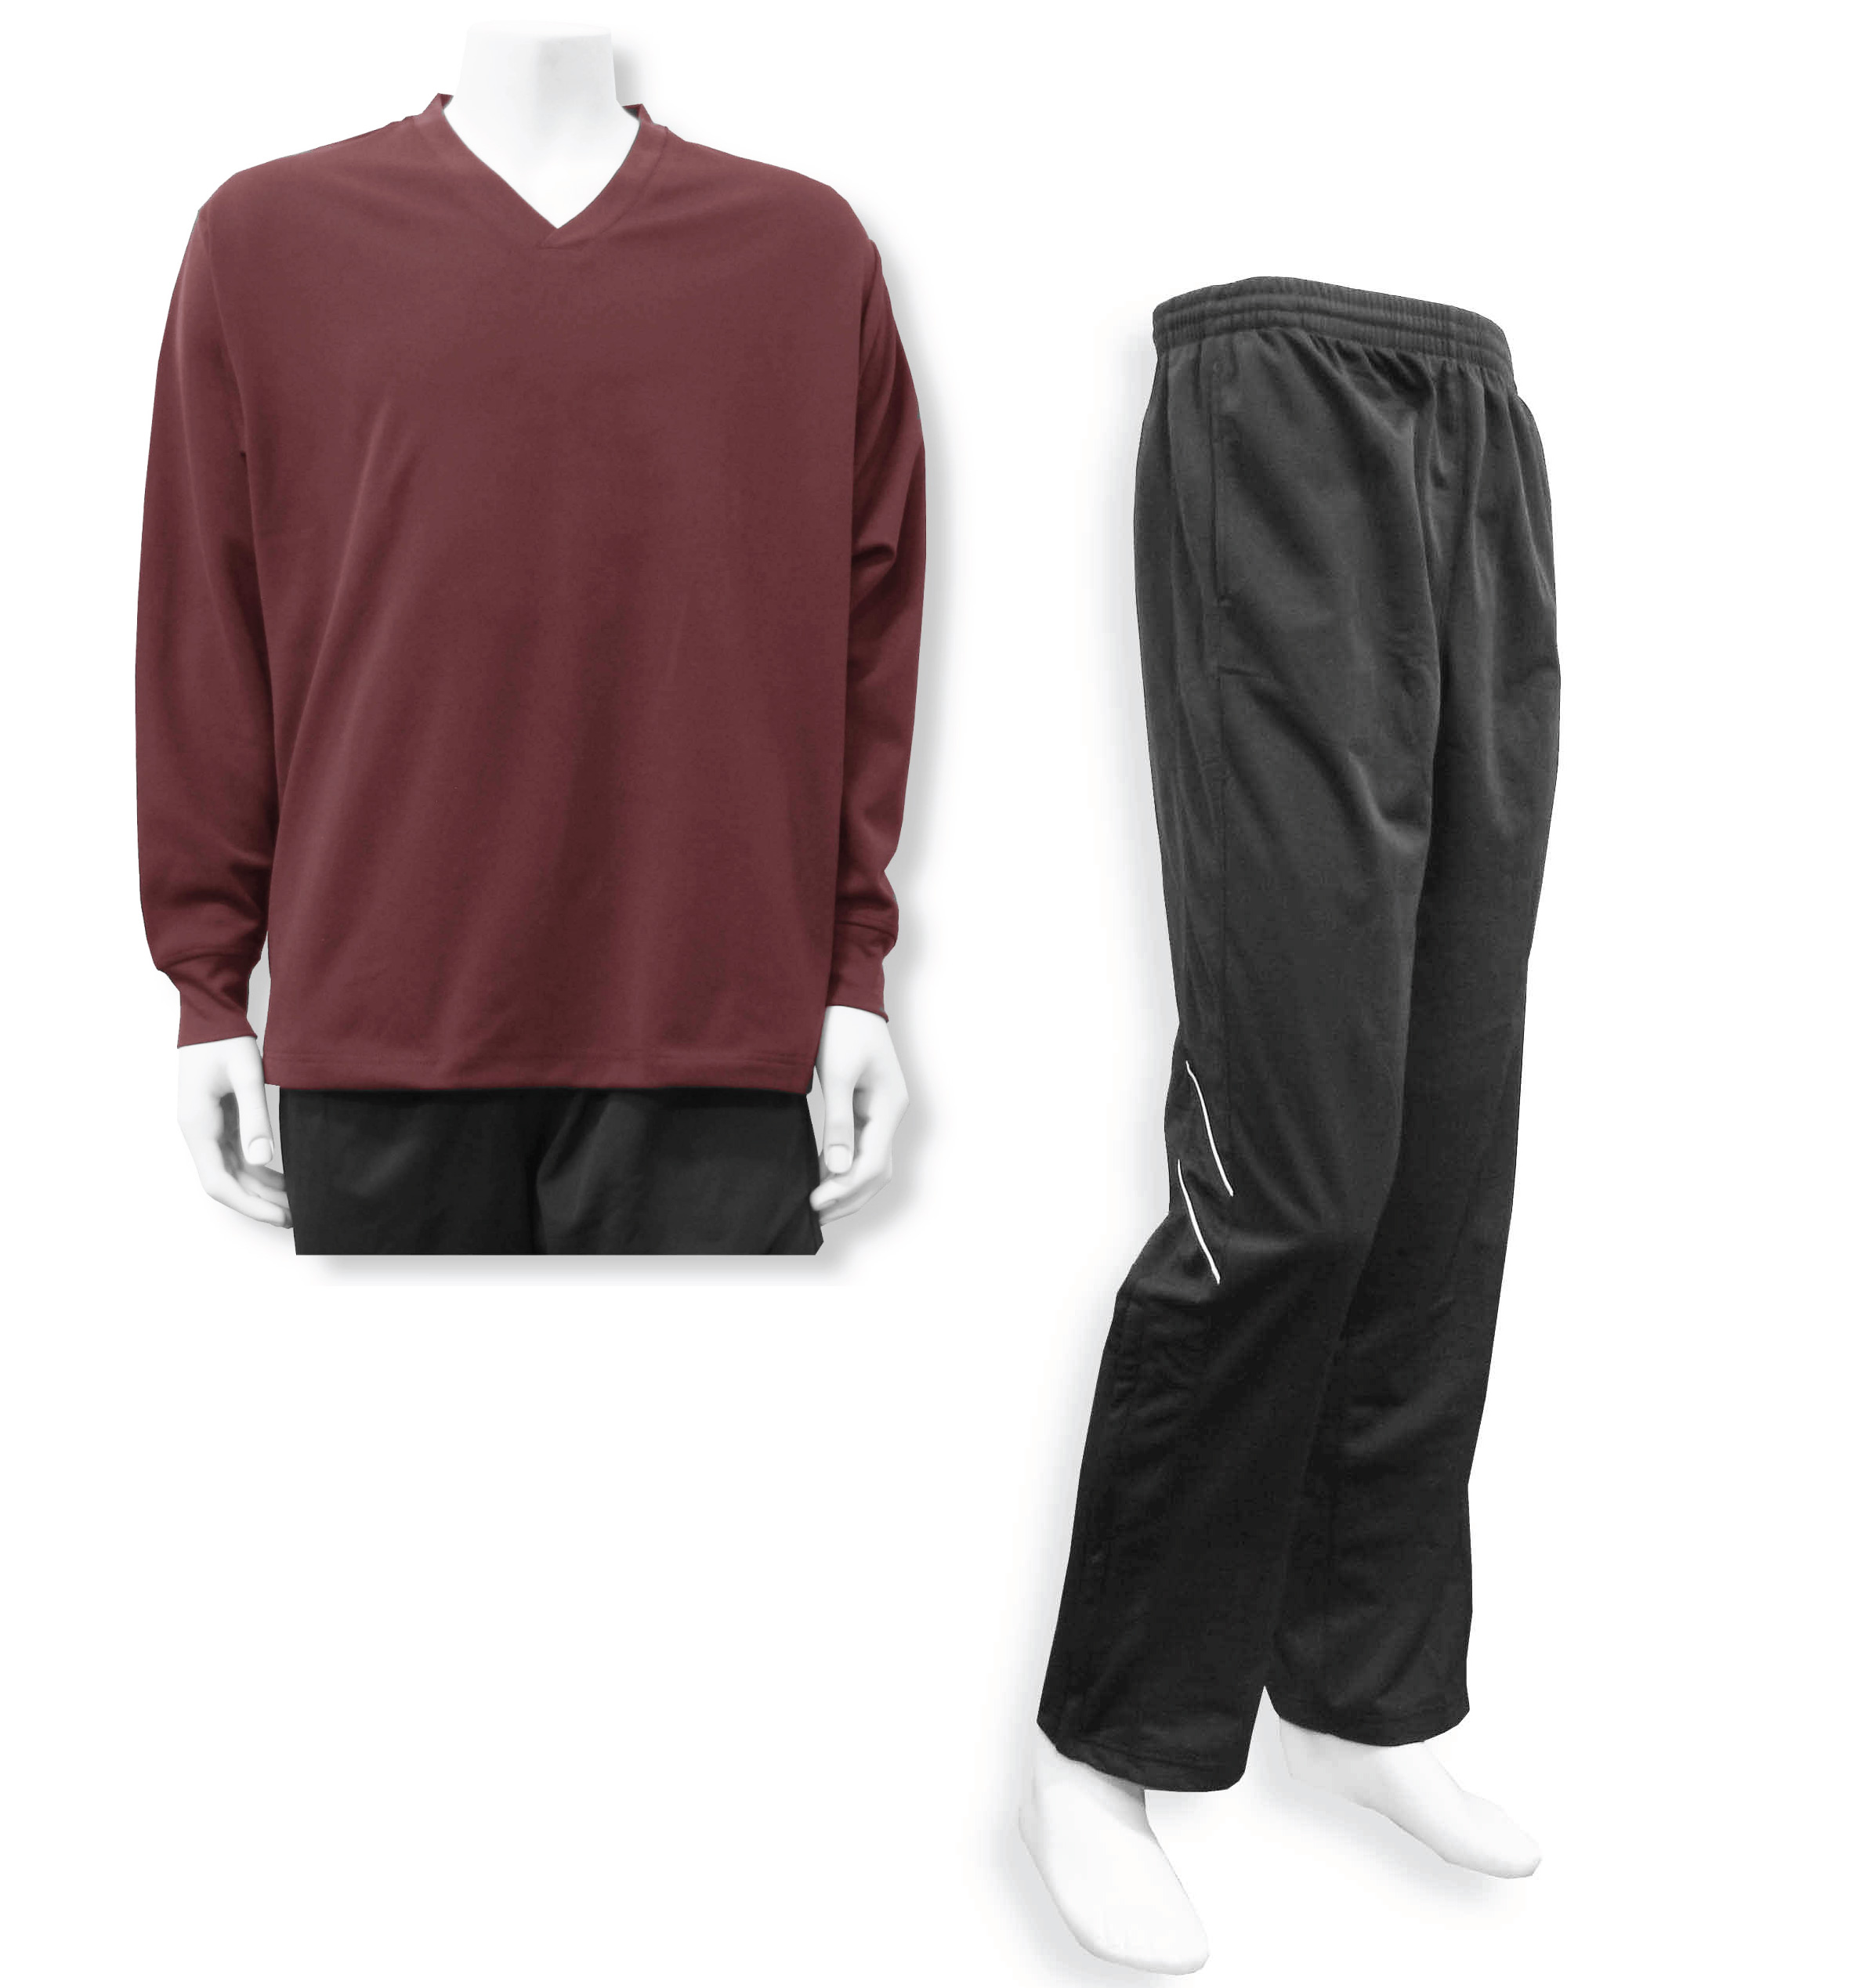 Men's casual track suit by Code Four Athletics in maroon / black